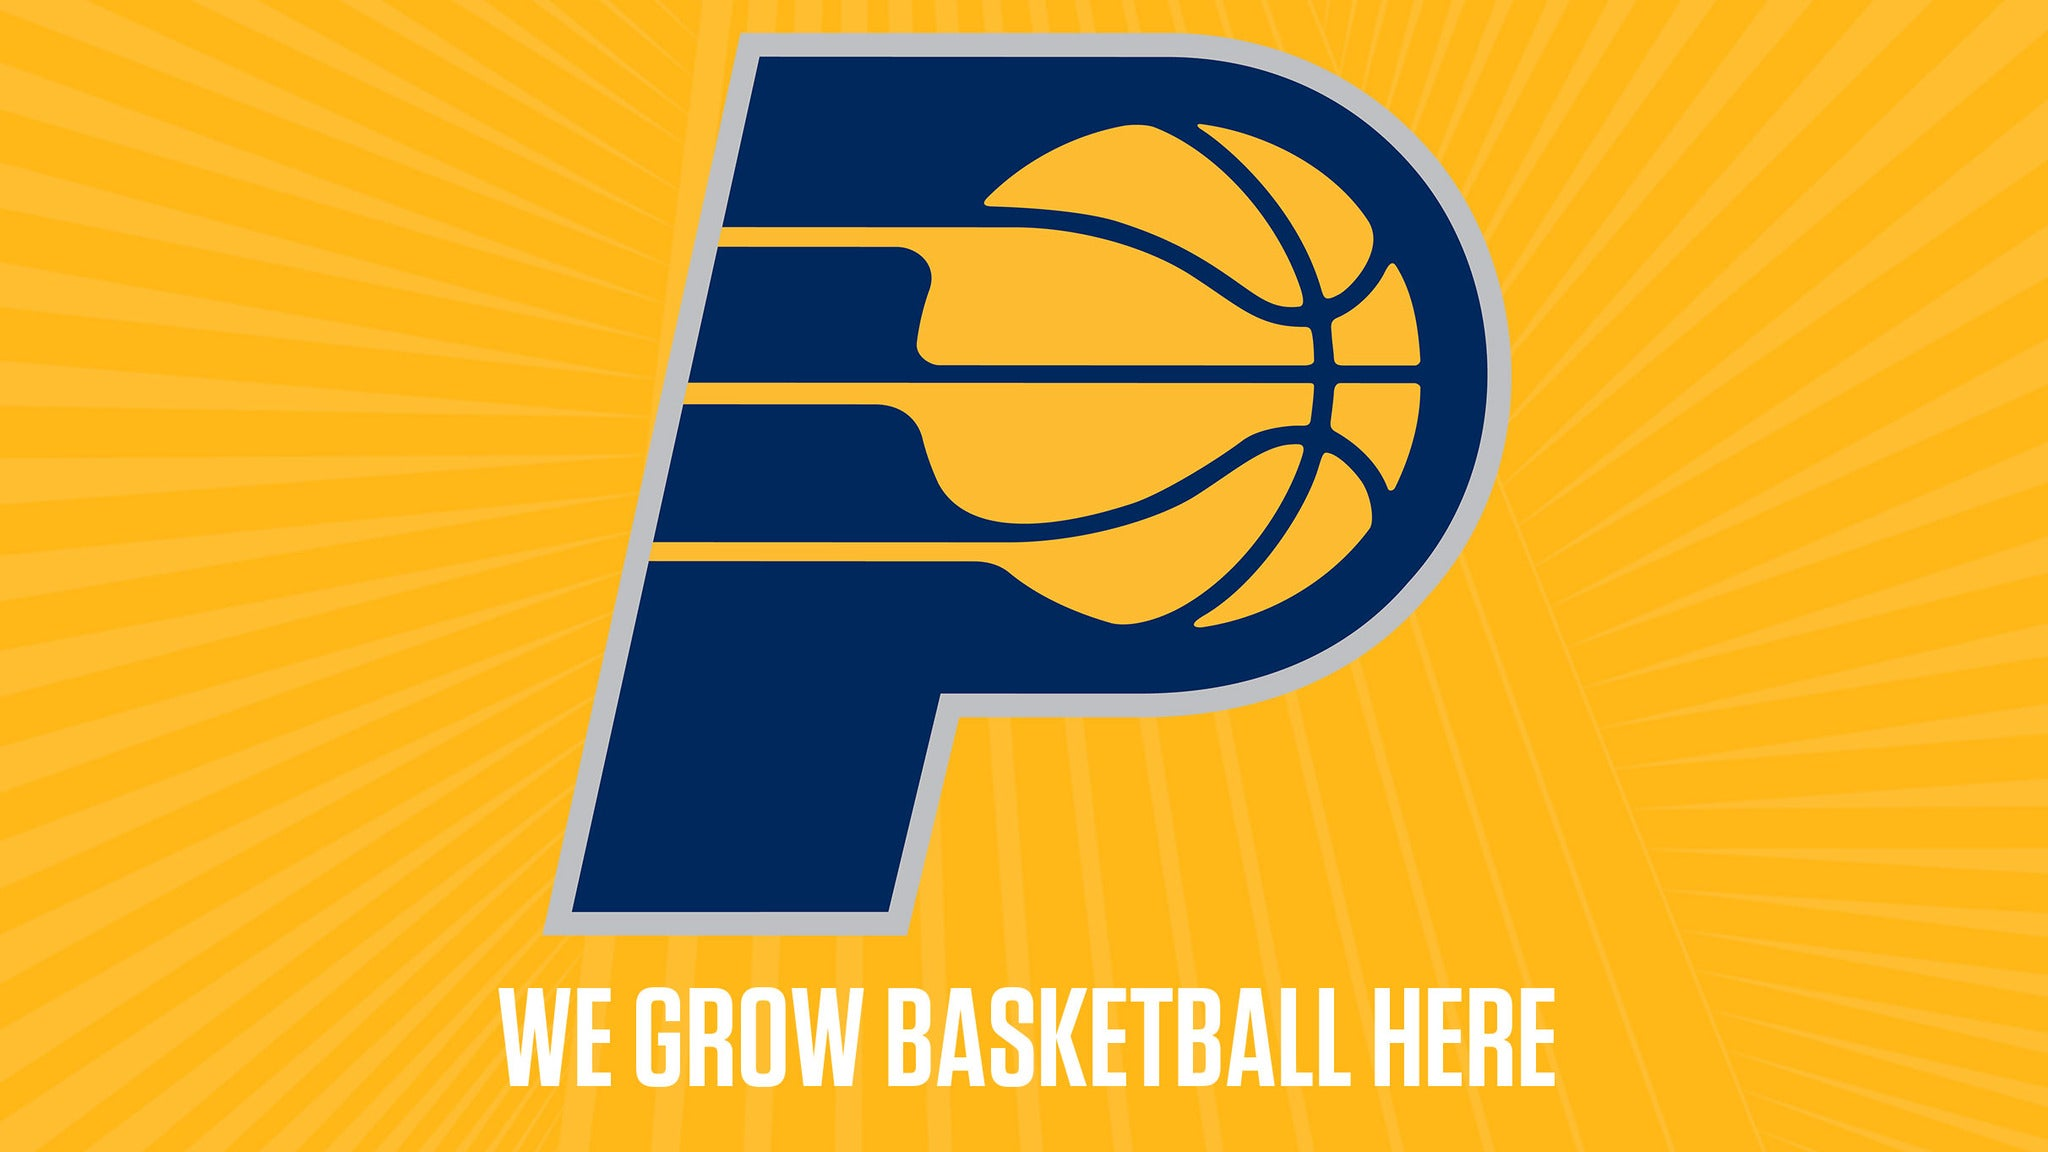 East Conf Qtrs Gm 3: Cavaliers At Pacers Rd 1 Hm Gm 1